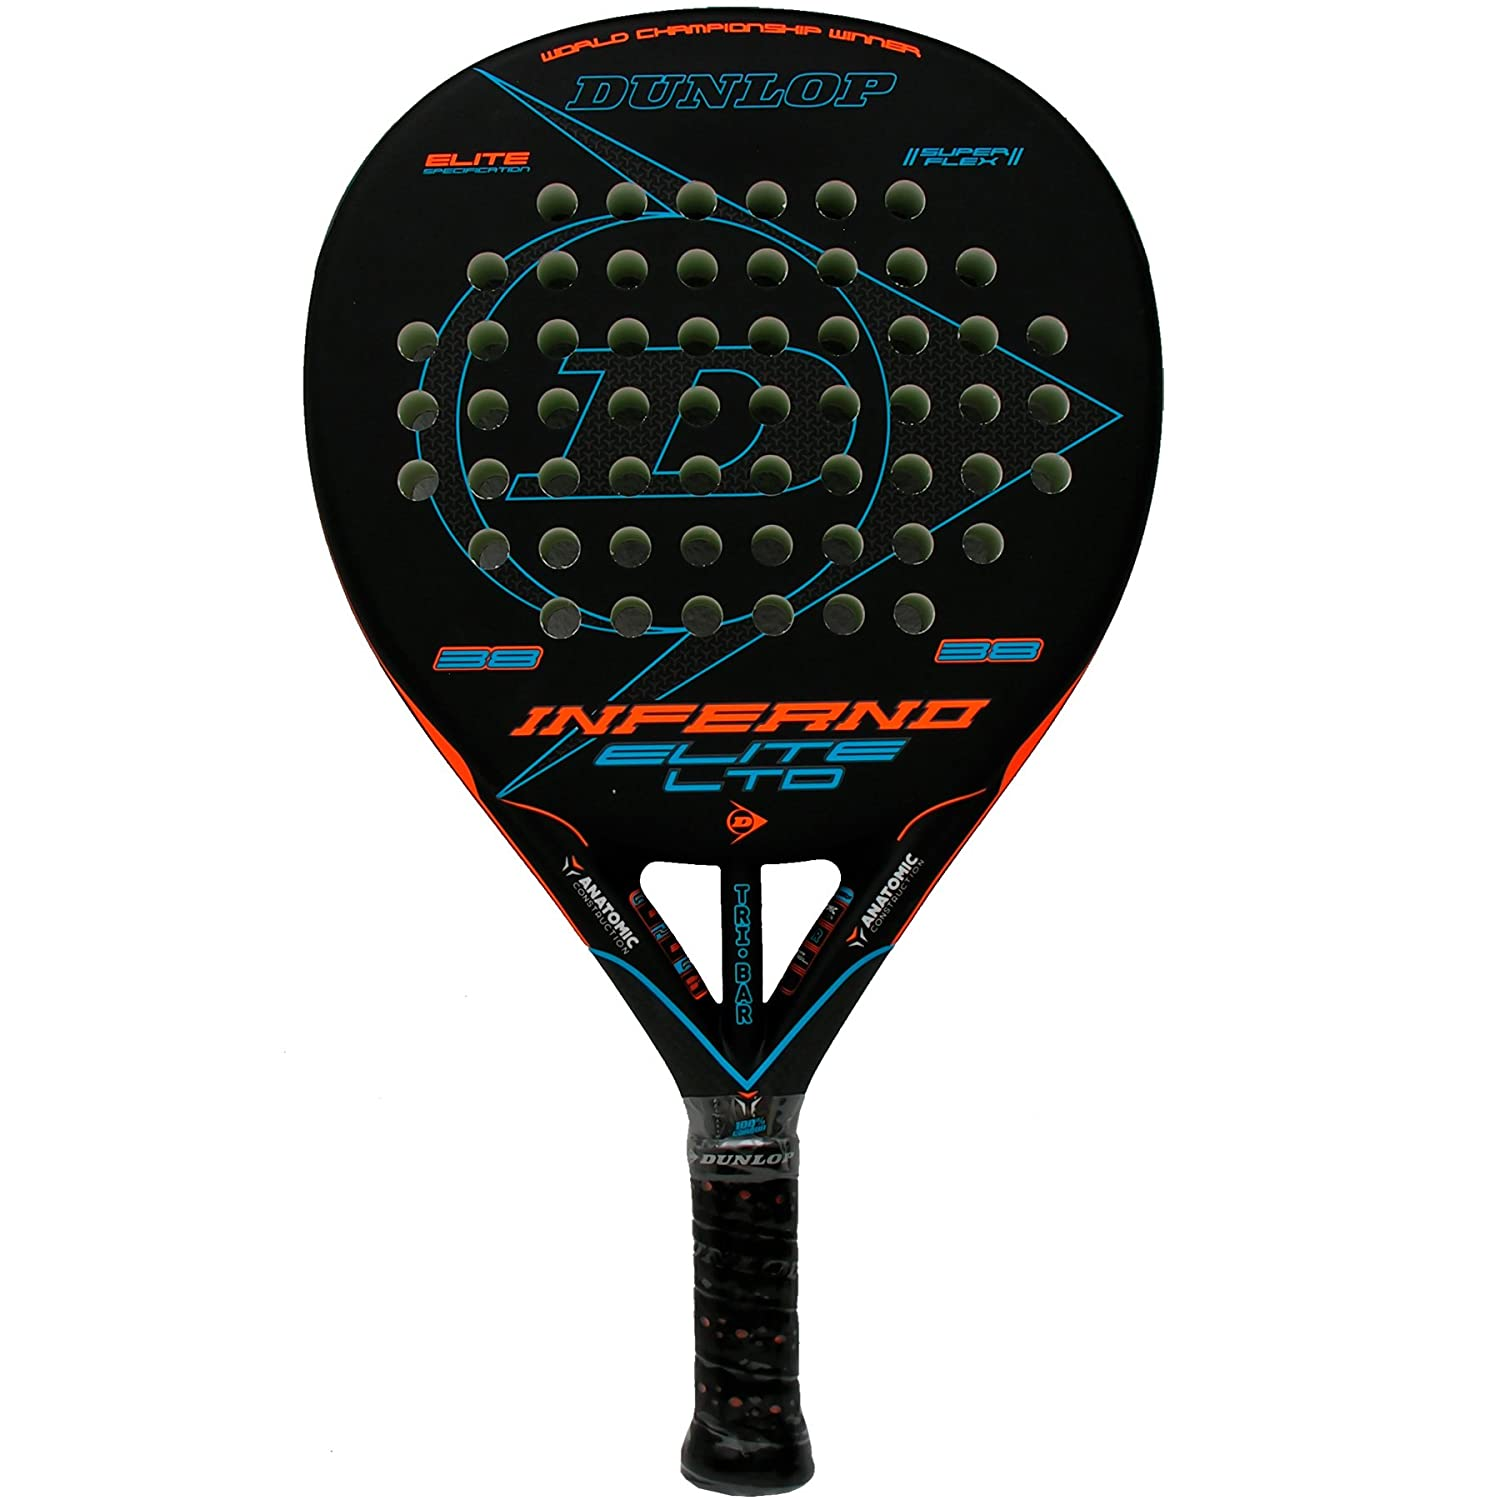 Pala de pádel Dunlop Inferno Elite LTD Orange - Blue: Amazon.es ...